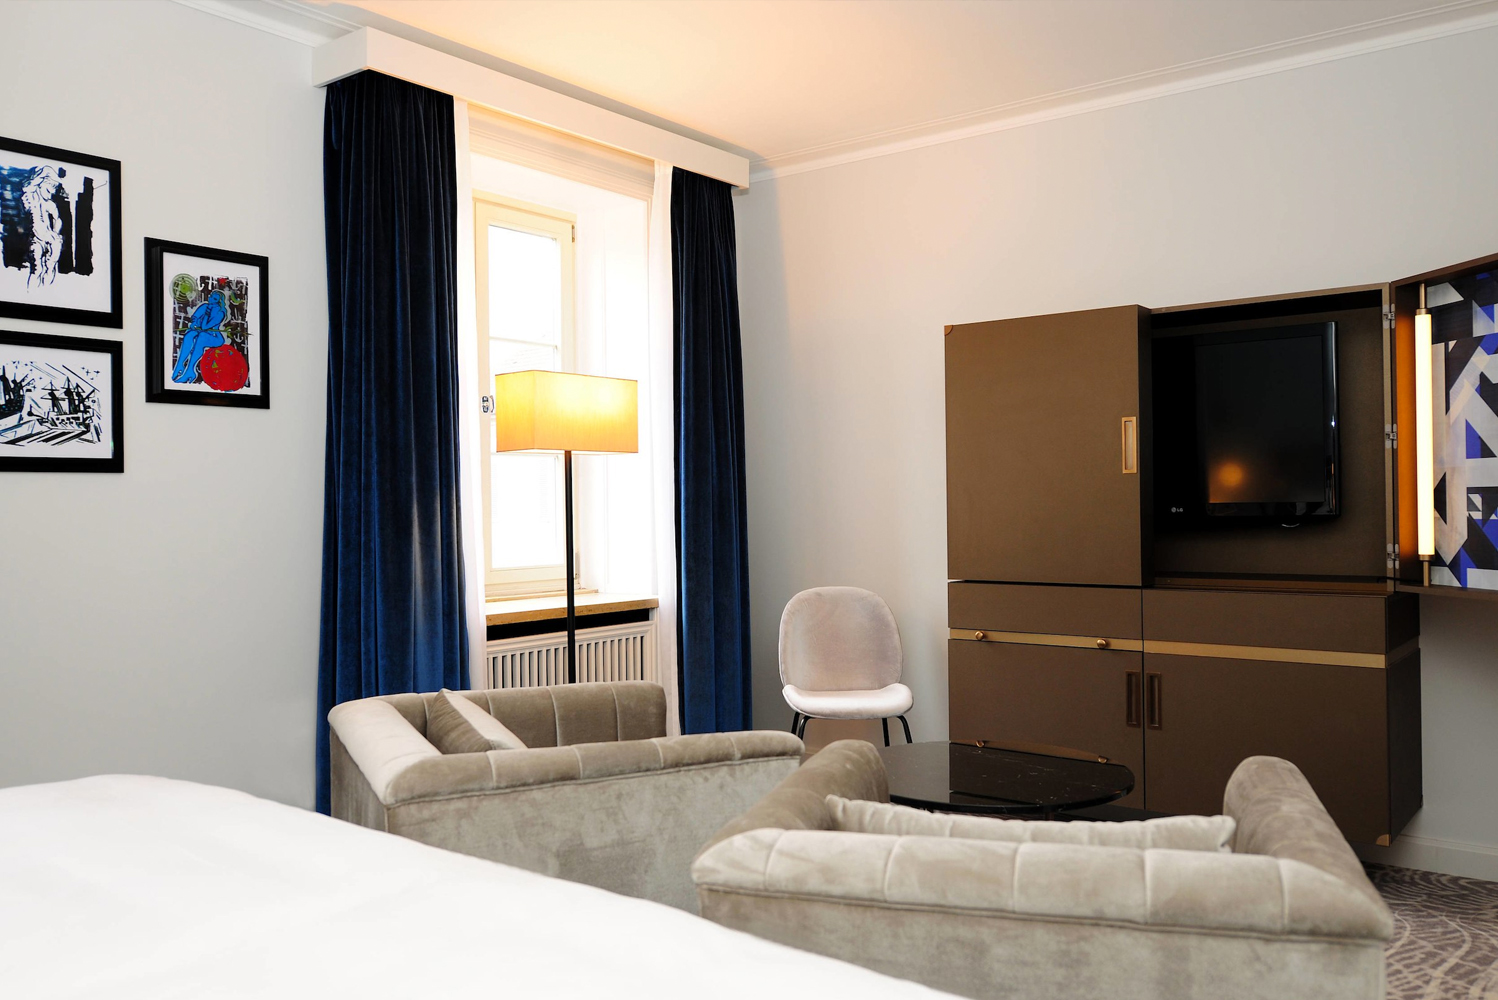 Hotel Elephant Weimar has 99 guestrooms, all redesigned to capture the property's artistic and architectural heritage.